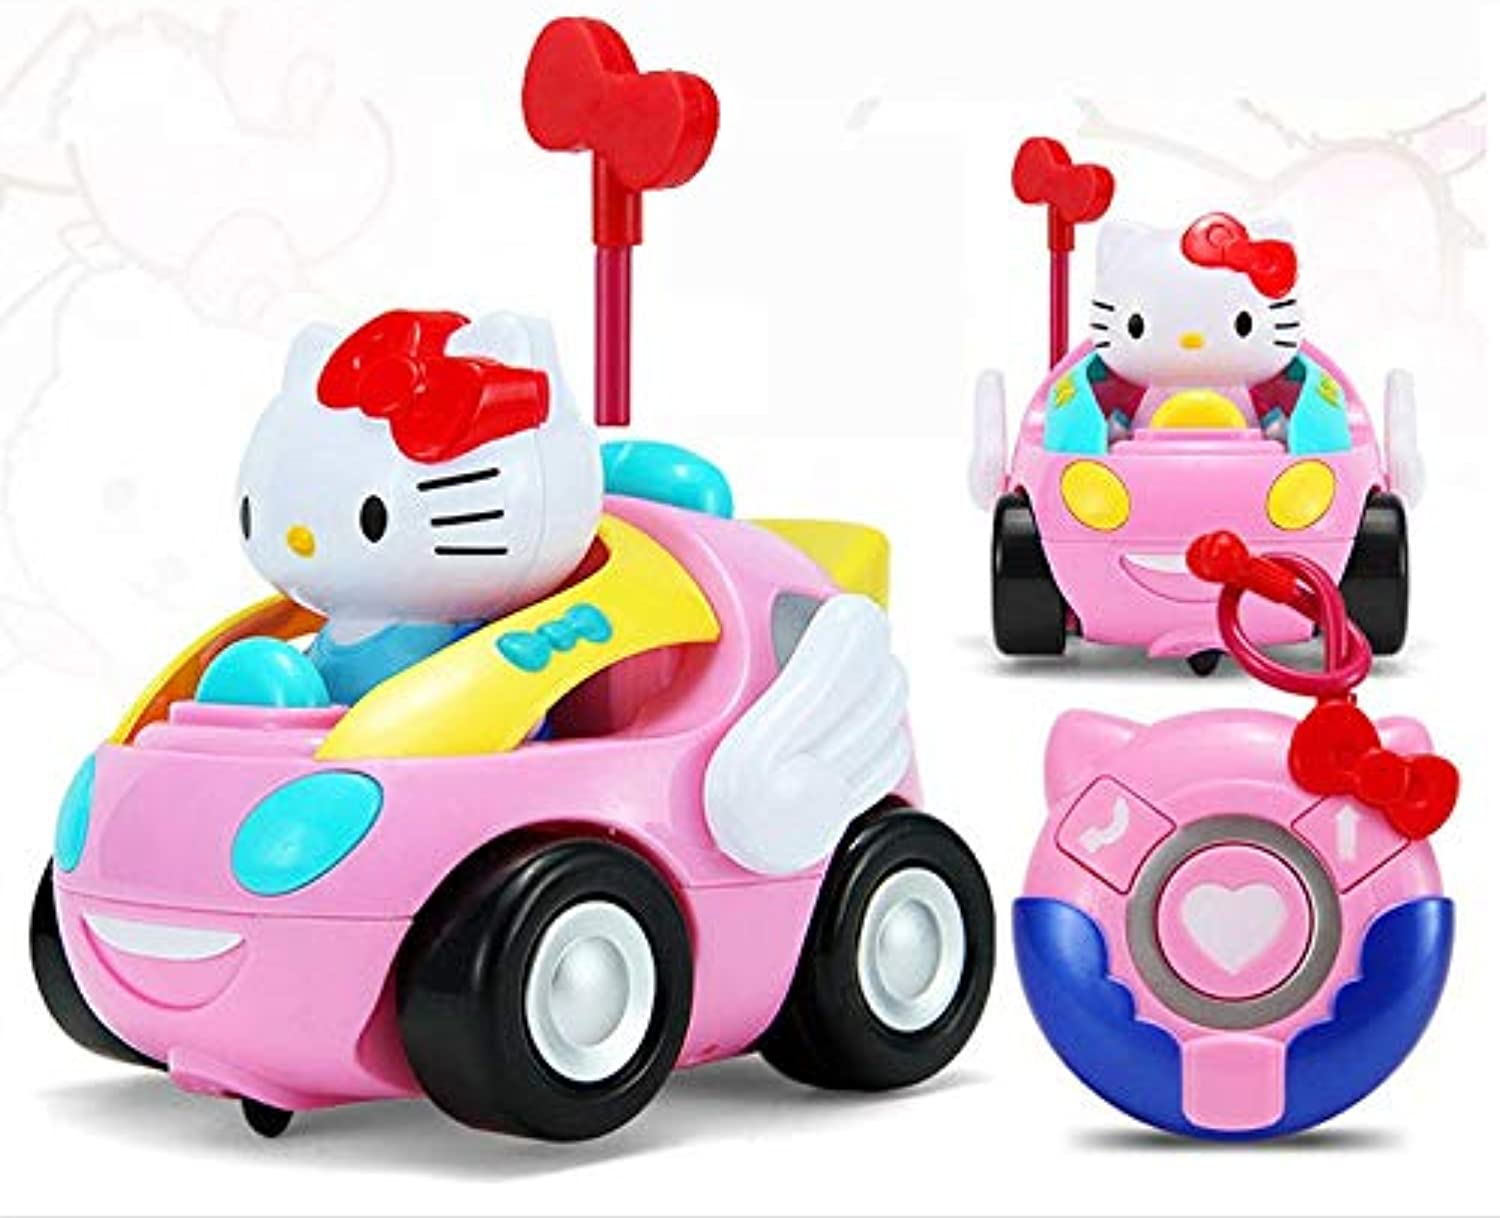 Generic RC car Toys Pink Cartoon cat car Toys juguetes Anime Cartoon Action Figure Musical Kids Baby Toy Birthday Xmas Gift brinquedos